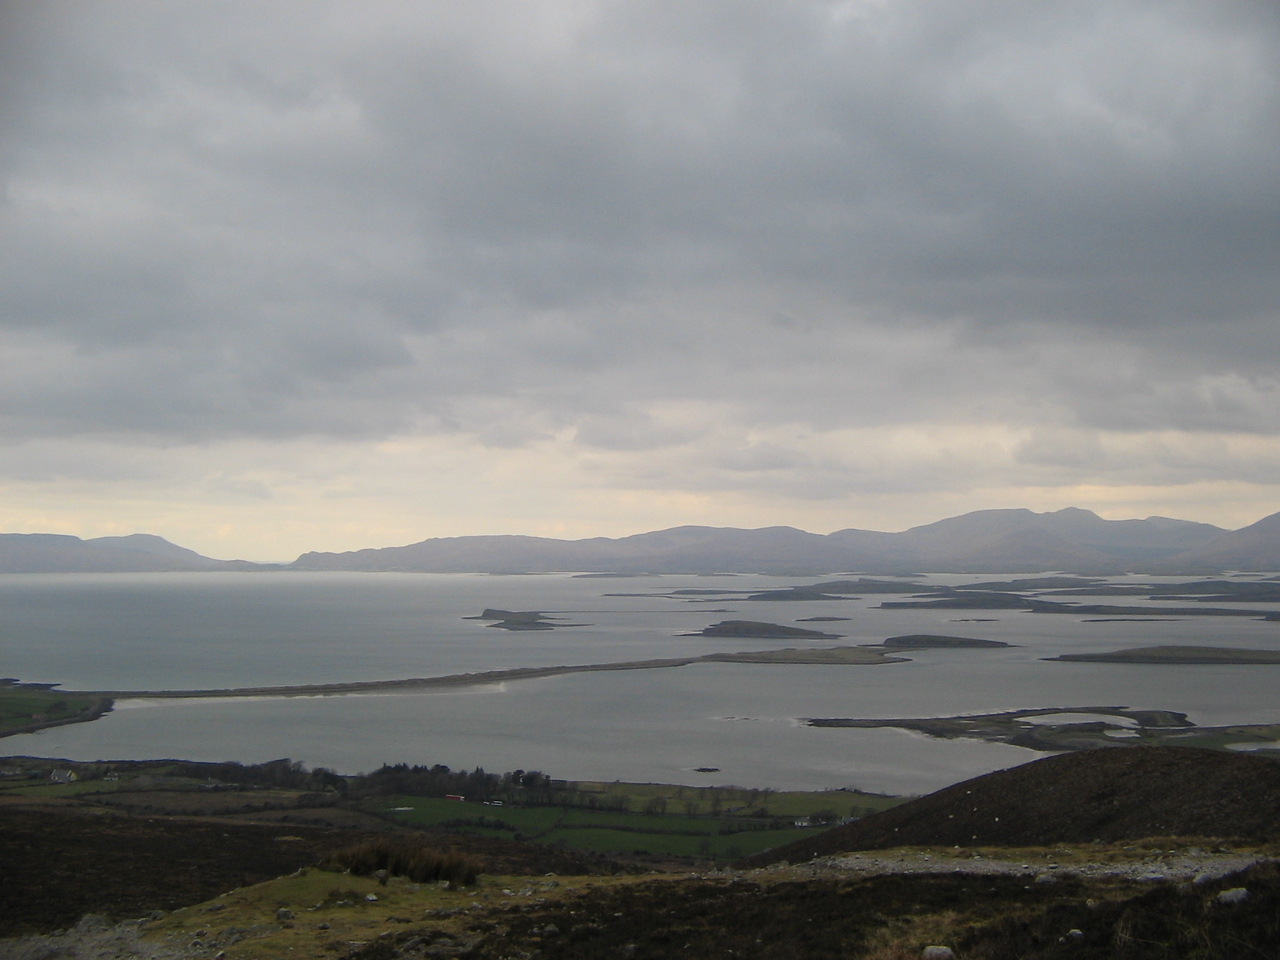 the islands in clew bay from the bottom half of the mountain